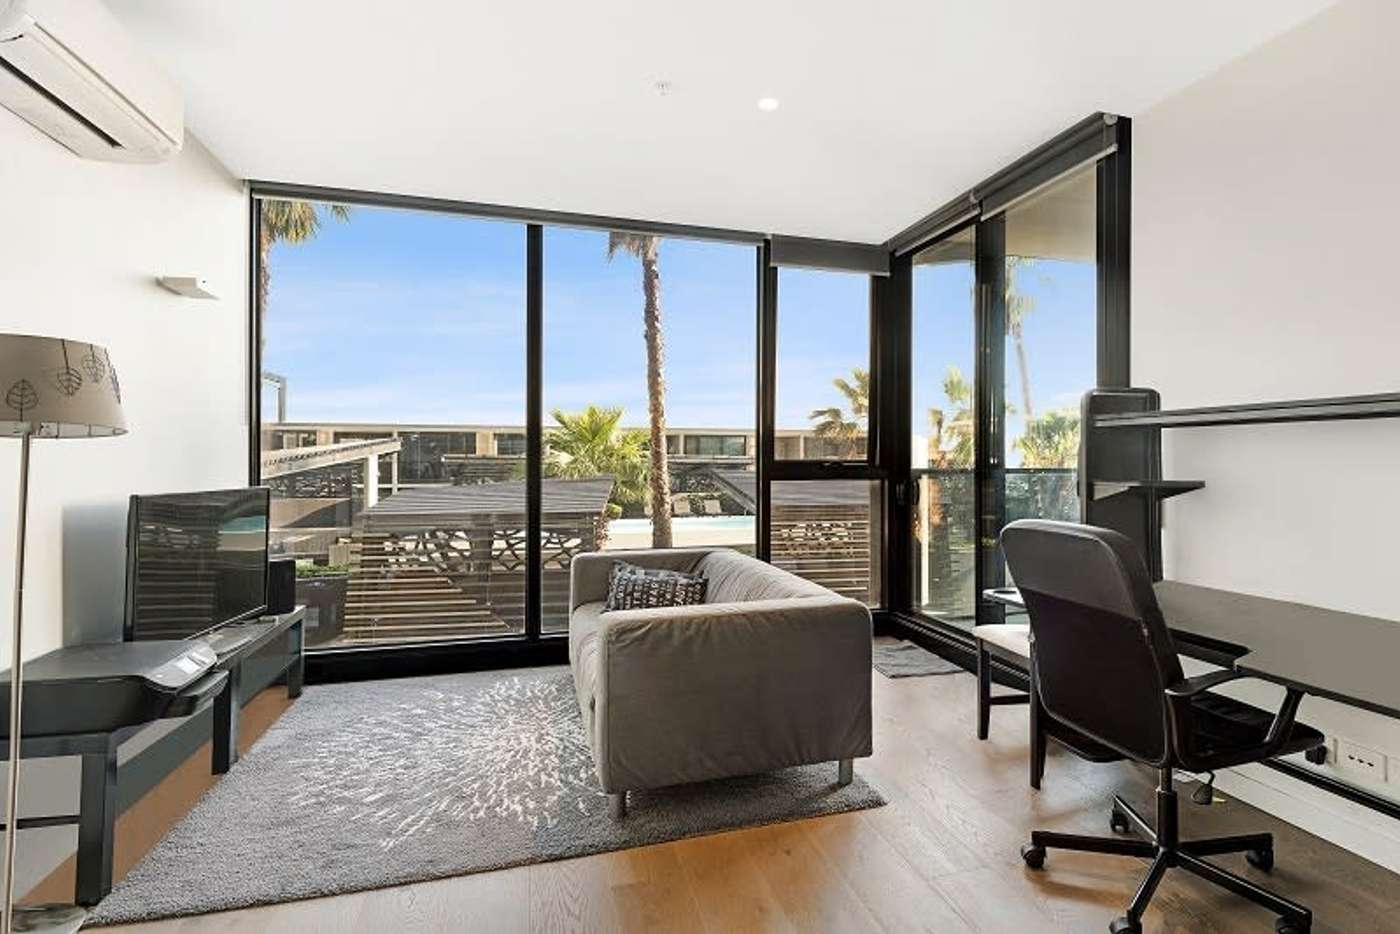 Main view of Homely apartment listing, 702/33 Blackwood st, North Melbourne VIC 3051